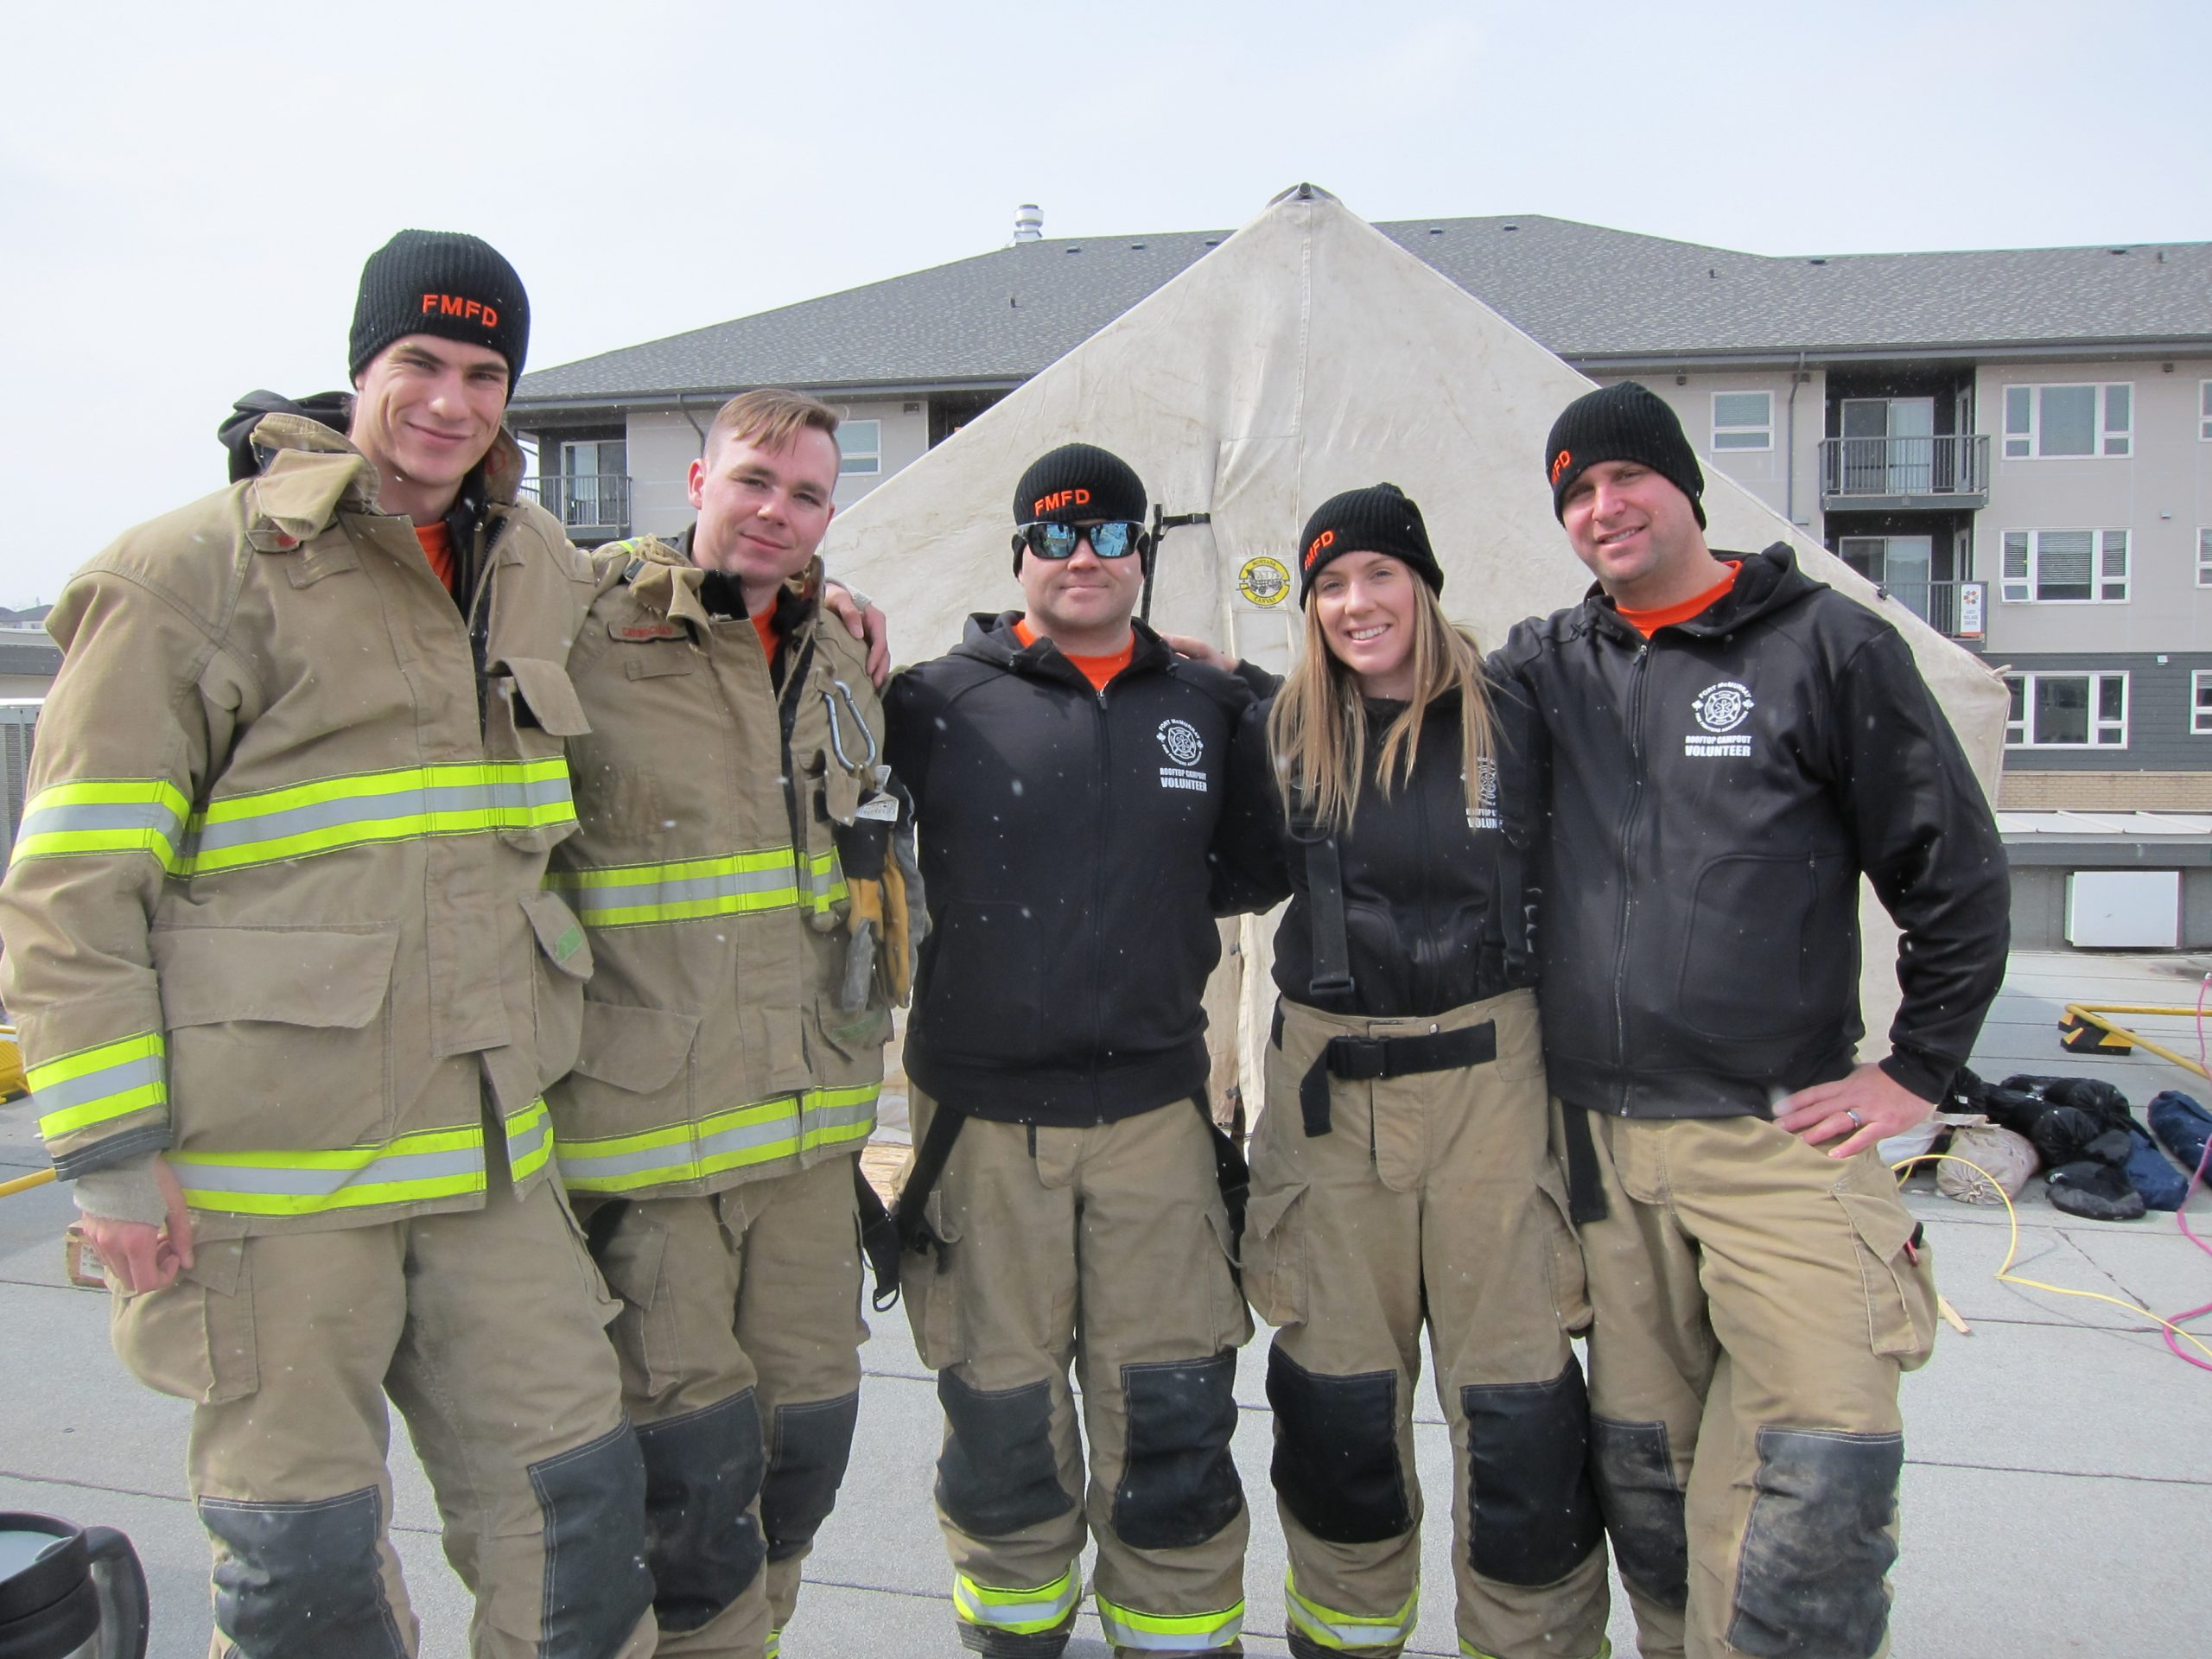 Rooftop Campout Raises Around $47,000 For Local Charities